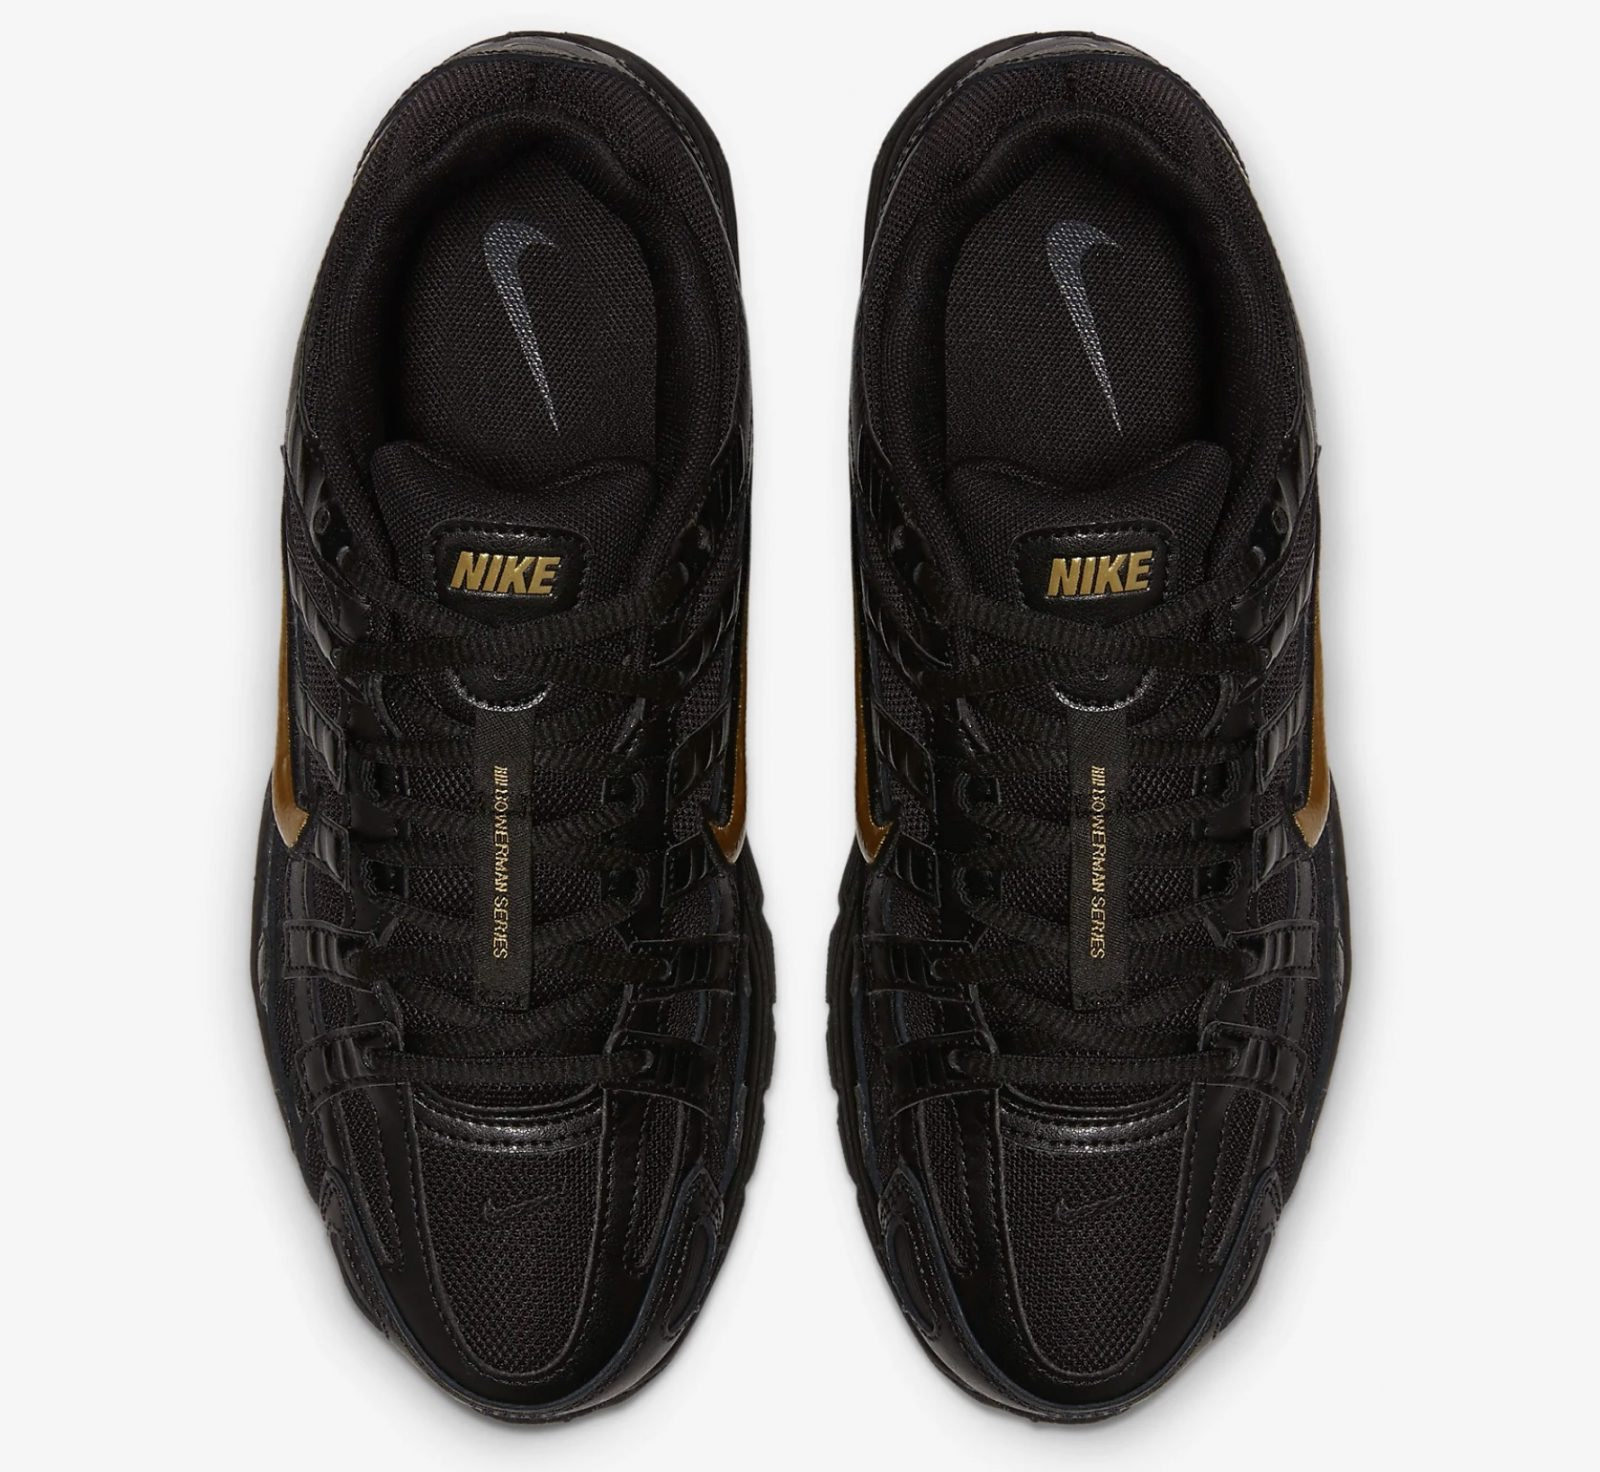 CJ9584-002 The Nike P-6000 Has Had An AW19 Makeover In Black And Gold 5 laces